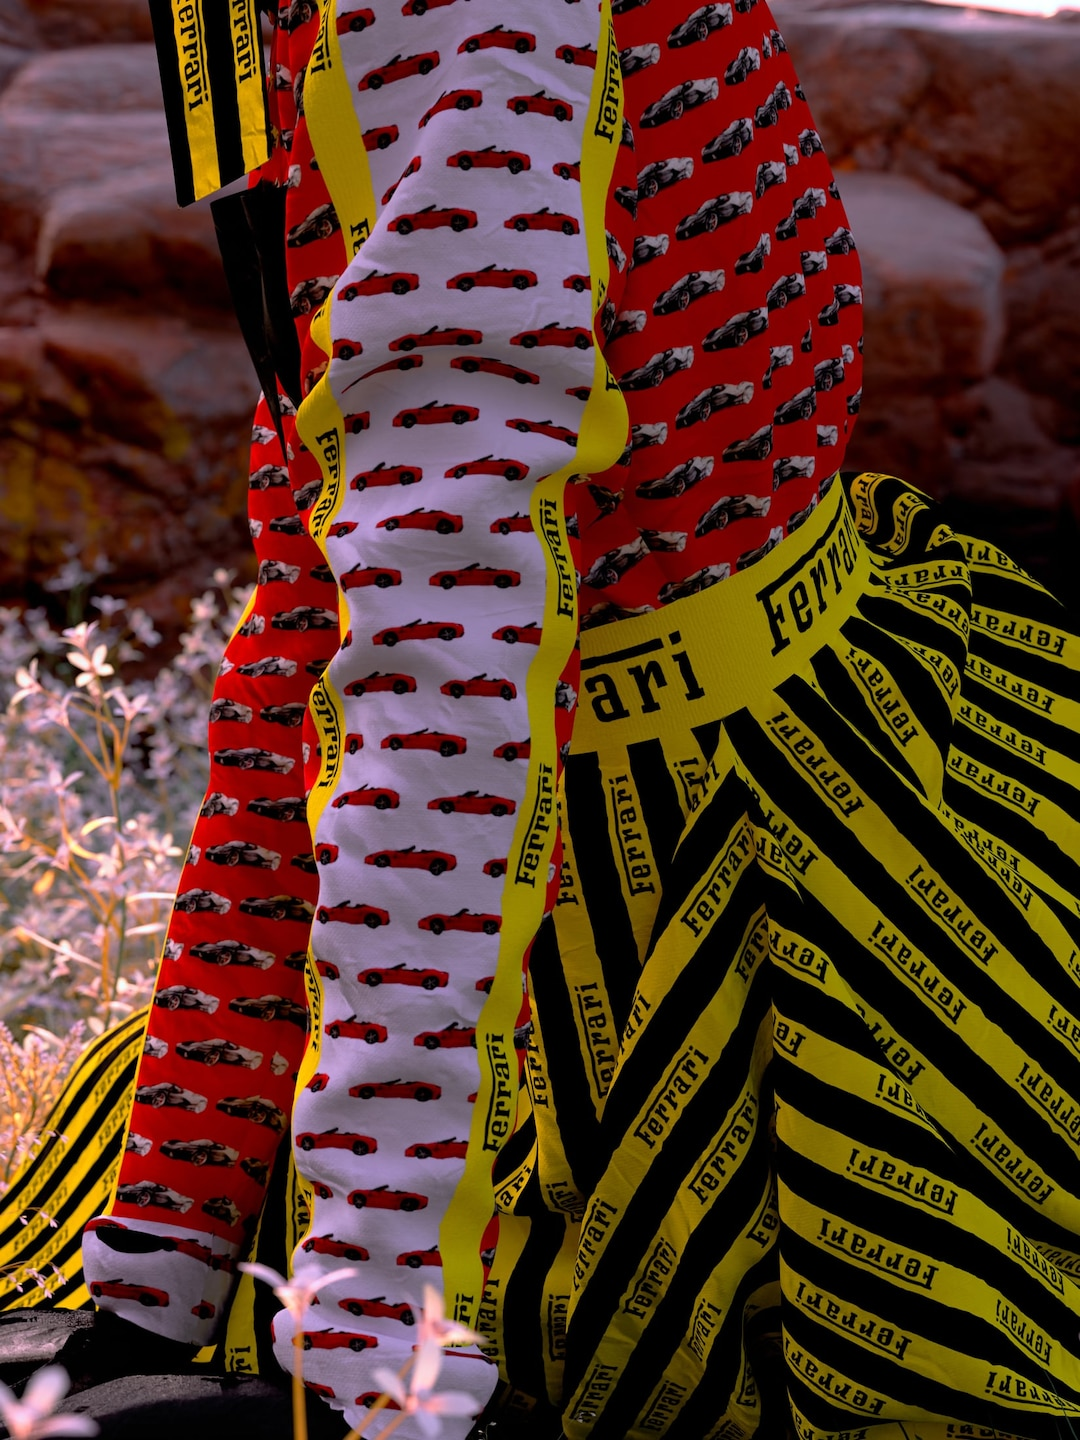 Red cars pattern in the white and red sleeve of a shirt worn with a yellow black-striped skirt